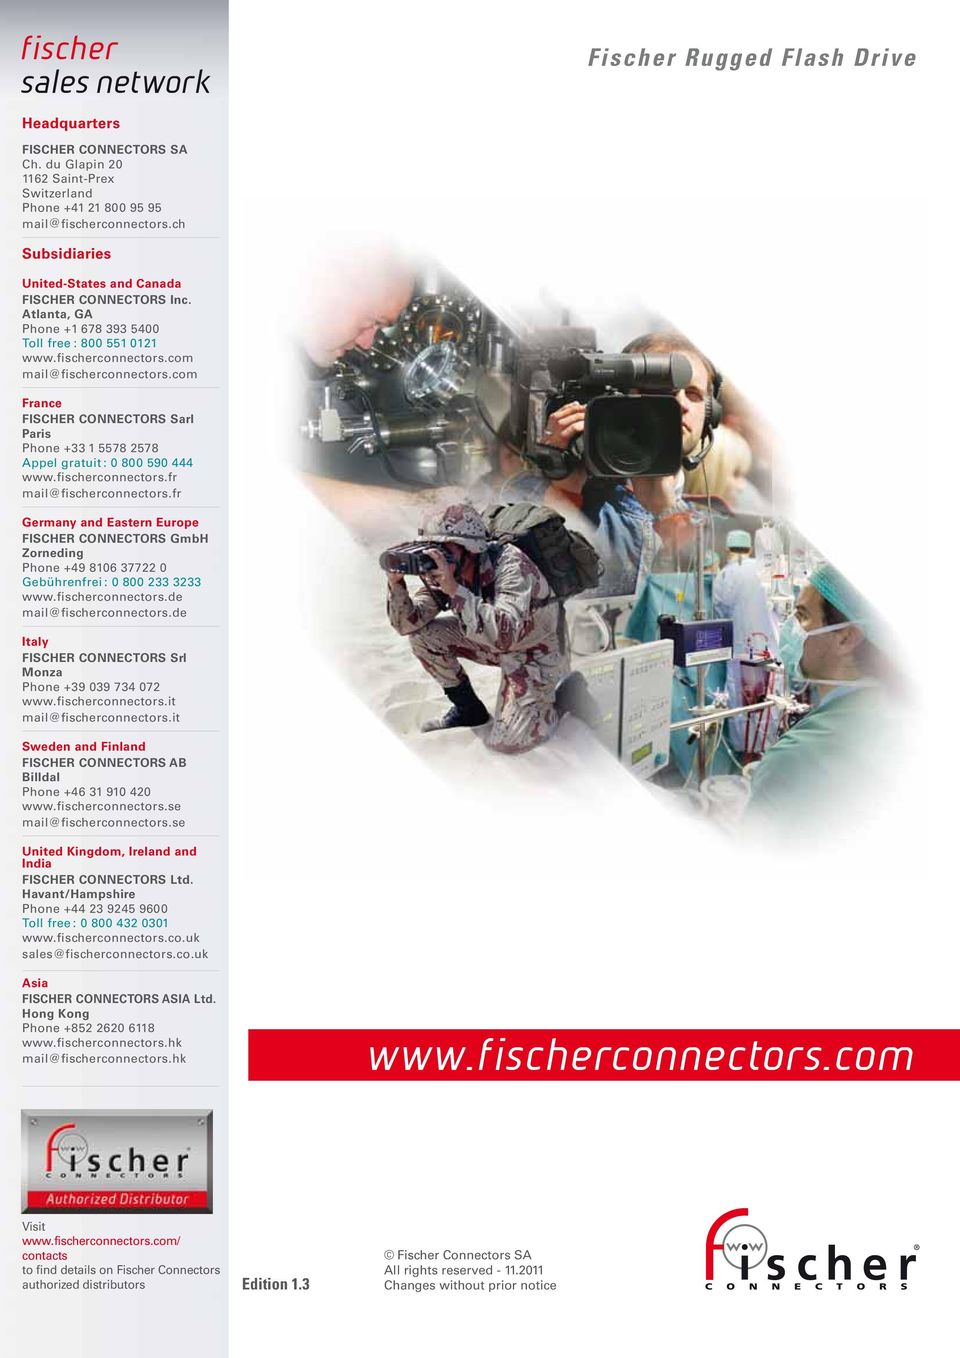 com France FISCHER CONNECTORS Sarl Paris Phone +33 1 5578 2578 Appel gratuit : 0 800 590 444 www.fischerconnectors.fr mail@fischerconnectors.